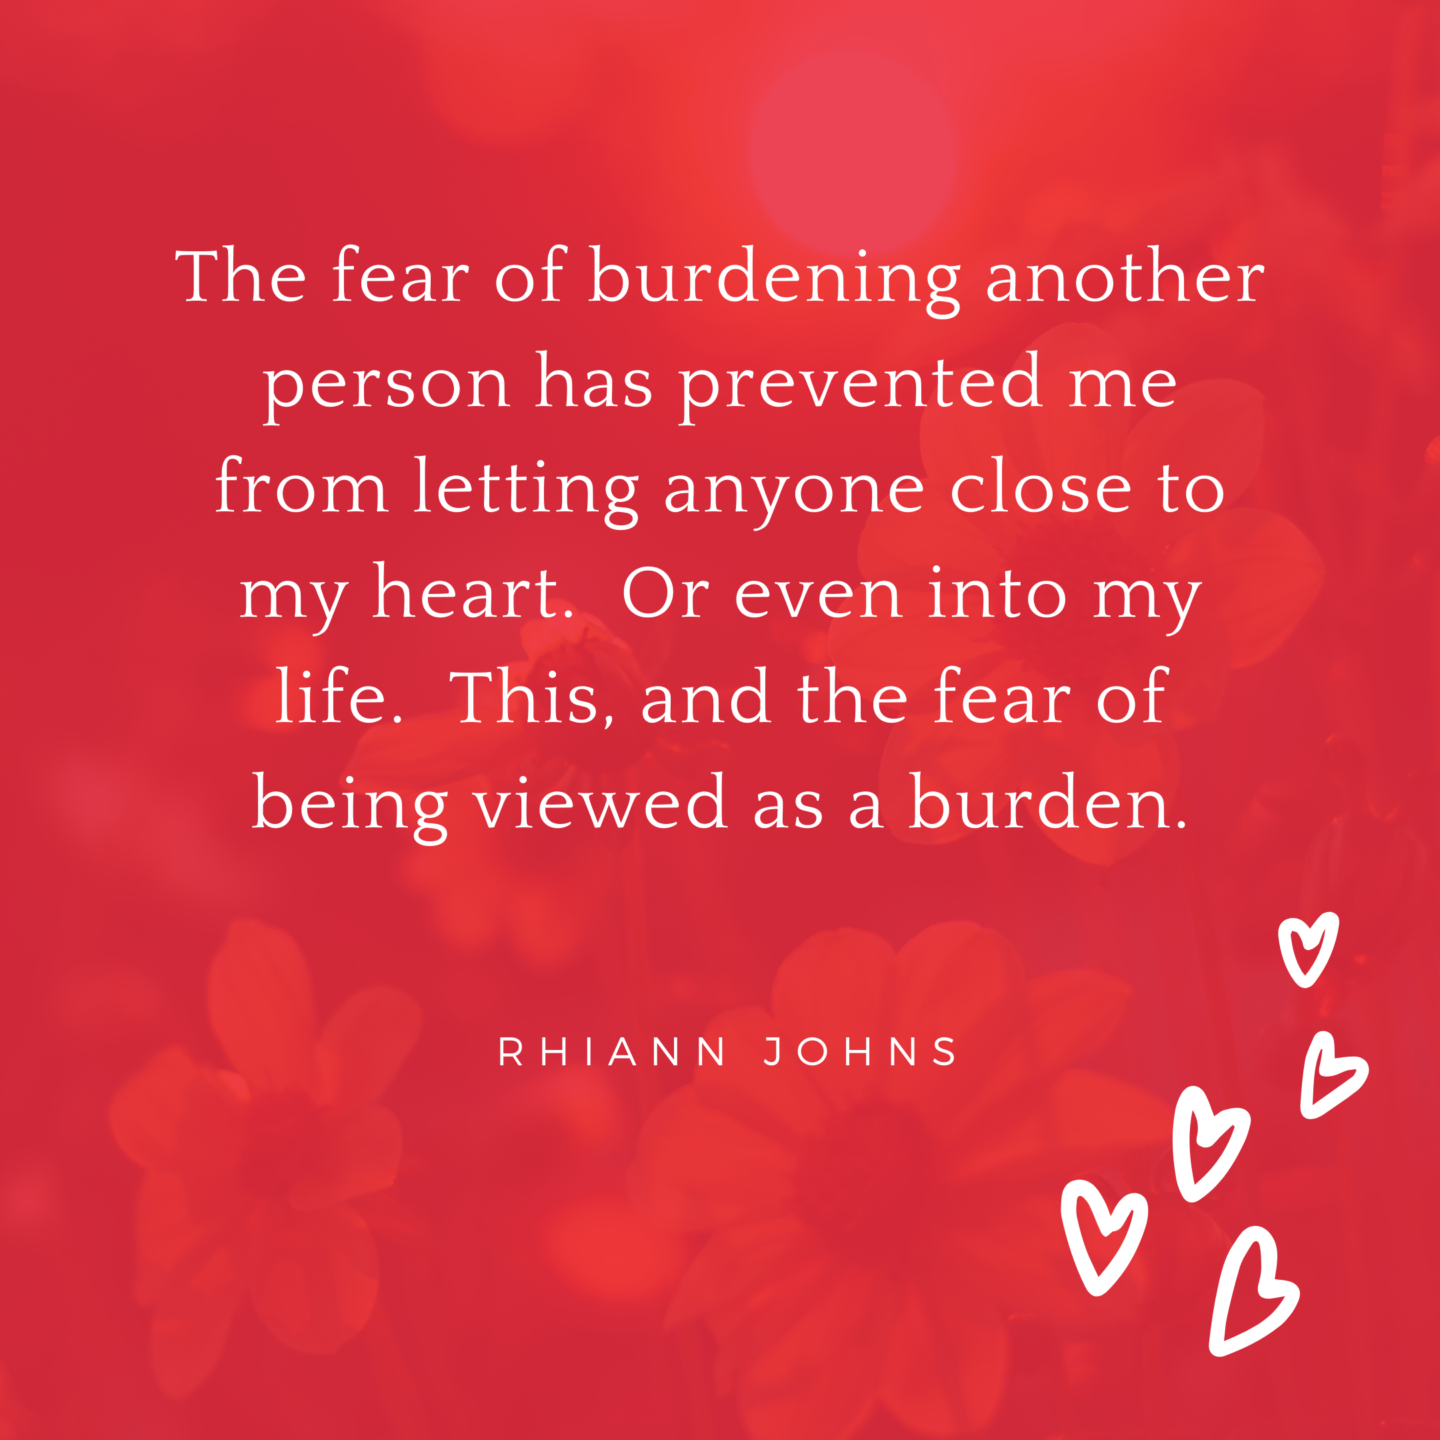 The fear of burdening another person has prevented me from letting anyone close to my heart. Or even into my life. This, and the fear of being viewed a burden.